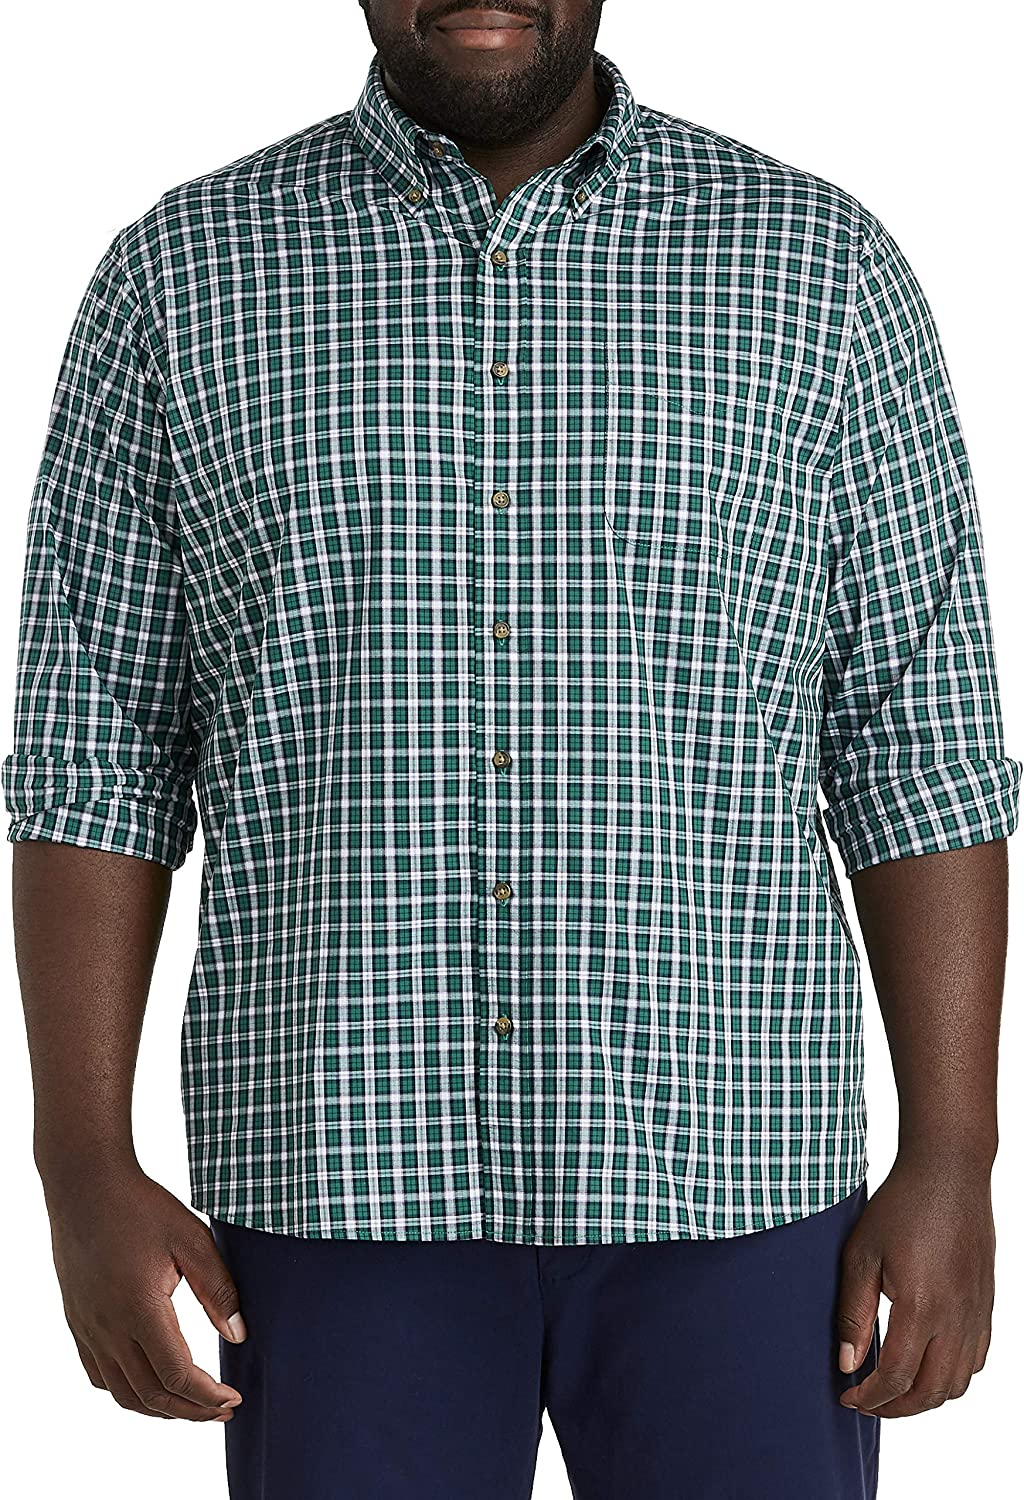 Harbor Bay by DXL Big and Tall Easy-Care Performance Plaid Sport Shirt, Evergreen